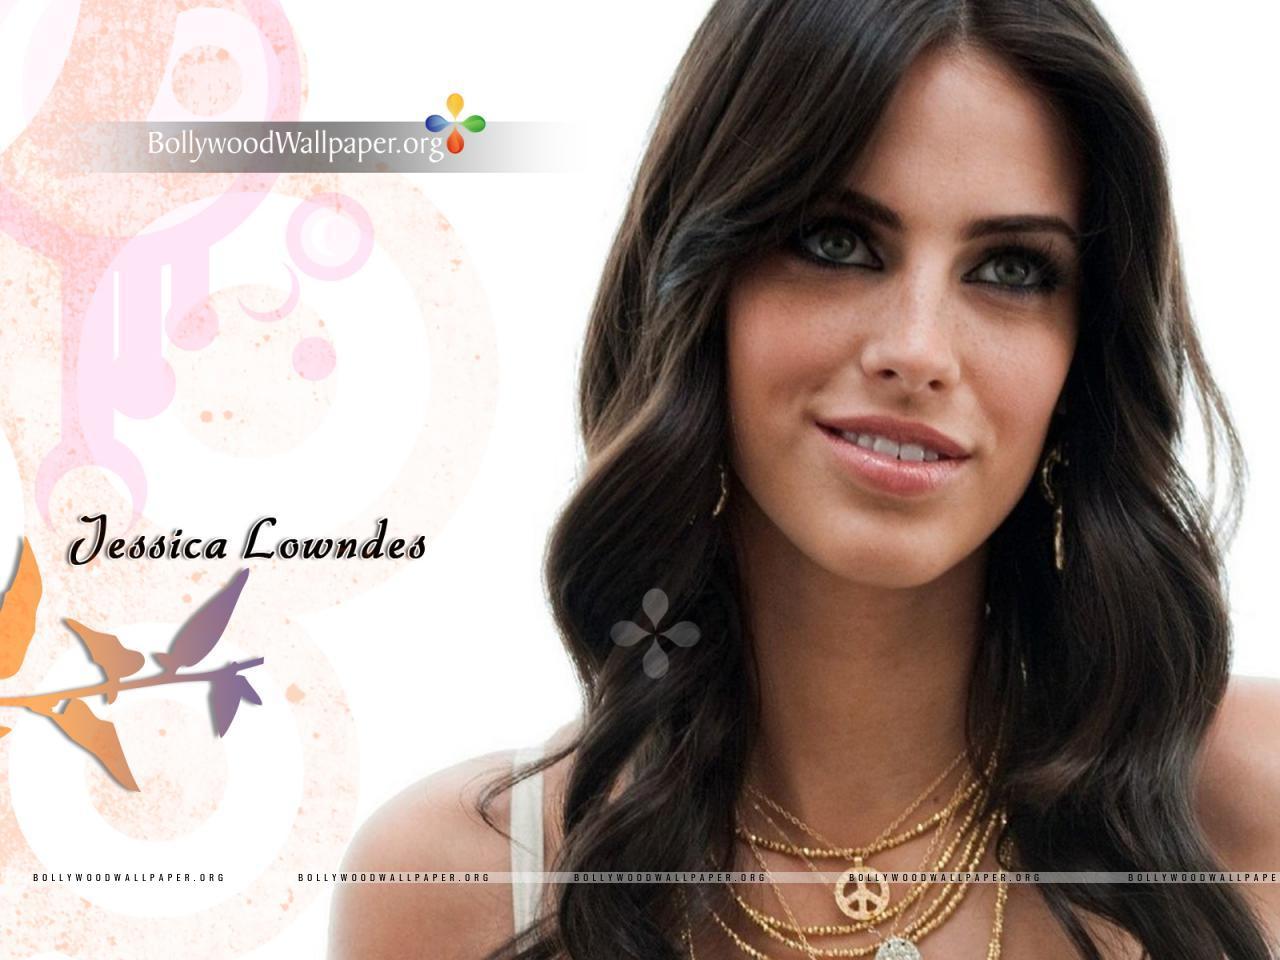 1280x960 - Jessica Lowndes Wallpapers 25